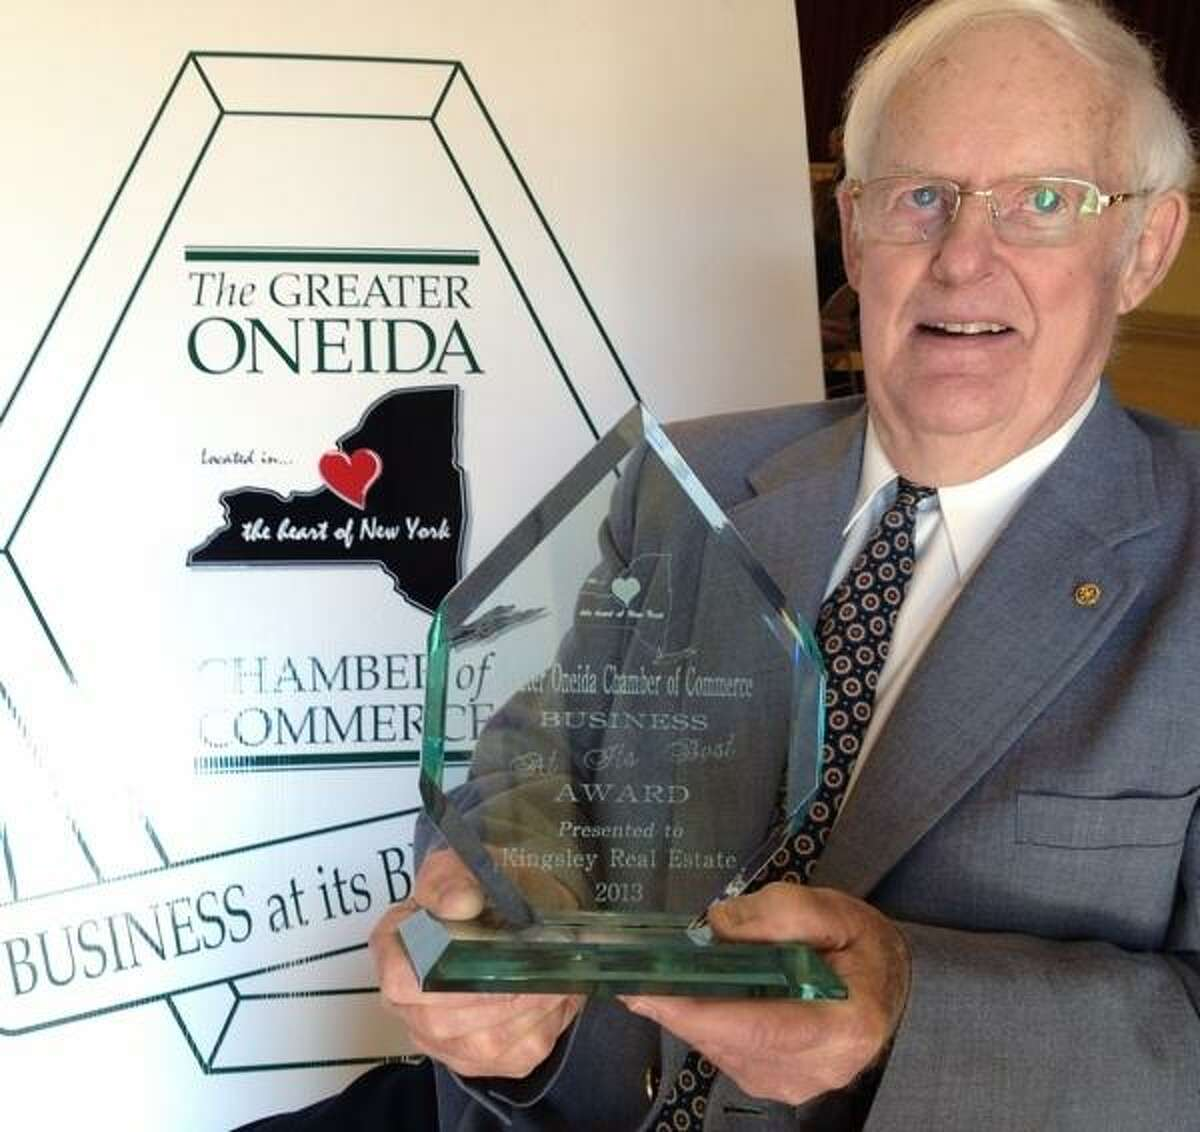 JOHN HAEGER @ONEIDAPHOTO ON TWITTER/ONEIDA DAILY DISPATCH Don Kingsley of Kingsley Real Estate recipient of the Greater Oneida Chamber of Commerce Busnessis At Its Best Award on Wednesday, June 19, 2013 in Oneida.